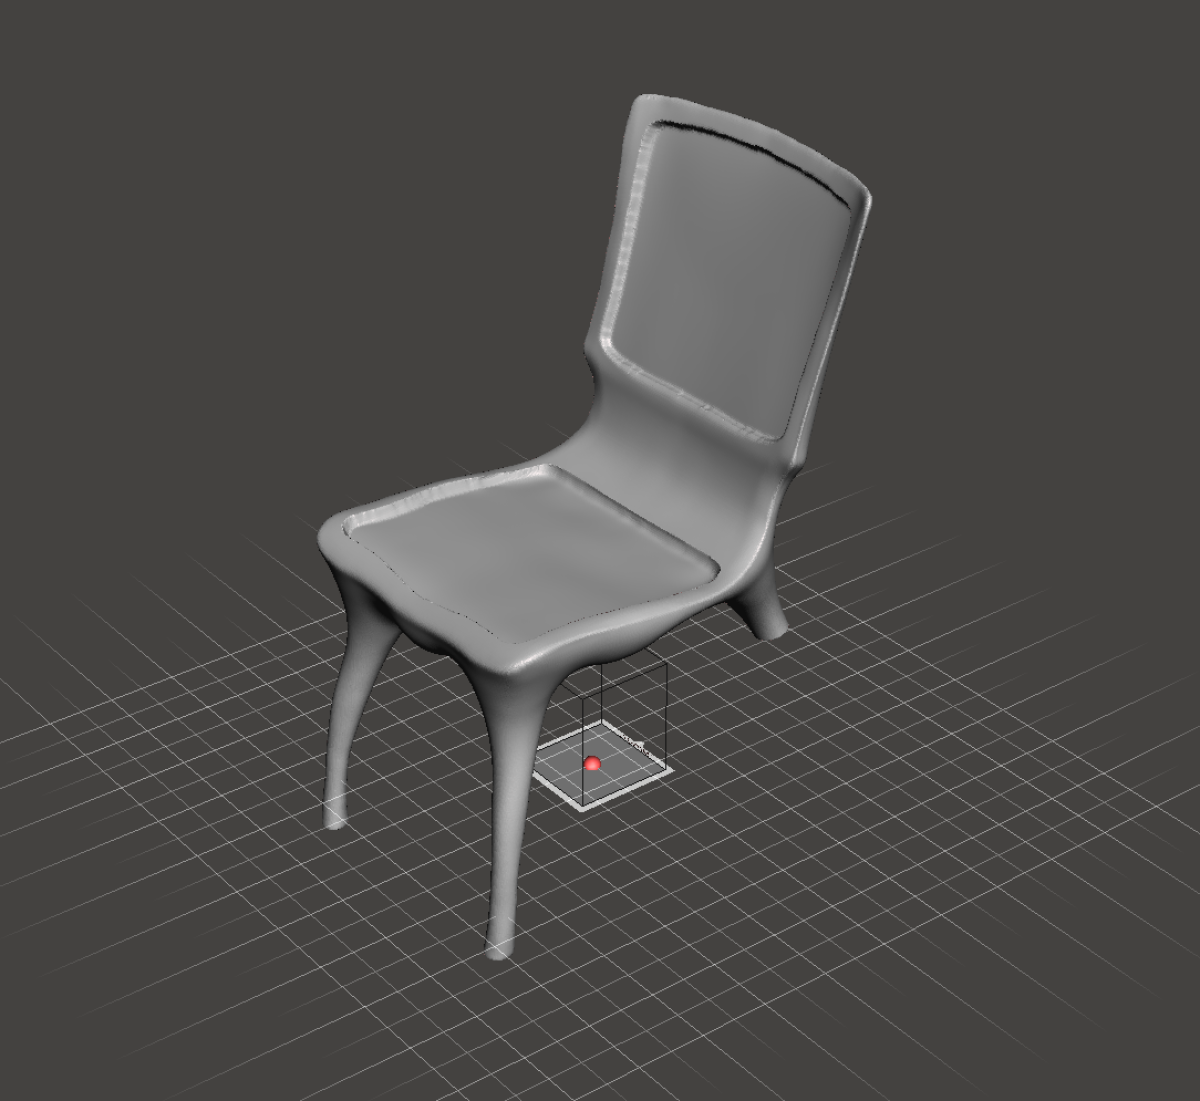 3D scan and 3d model of a designer furniture